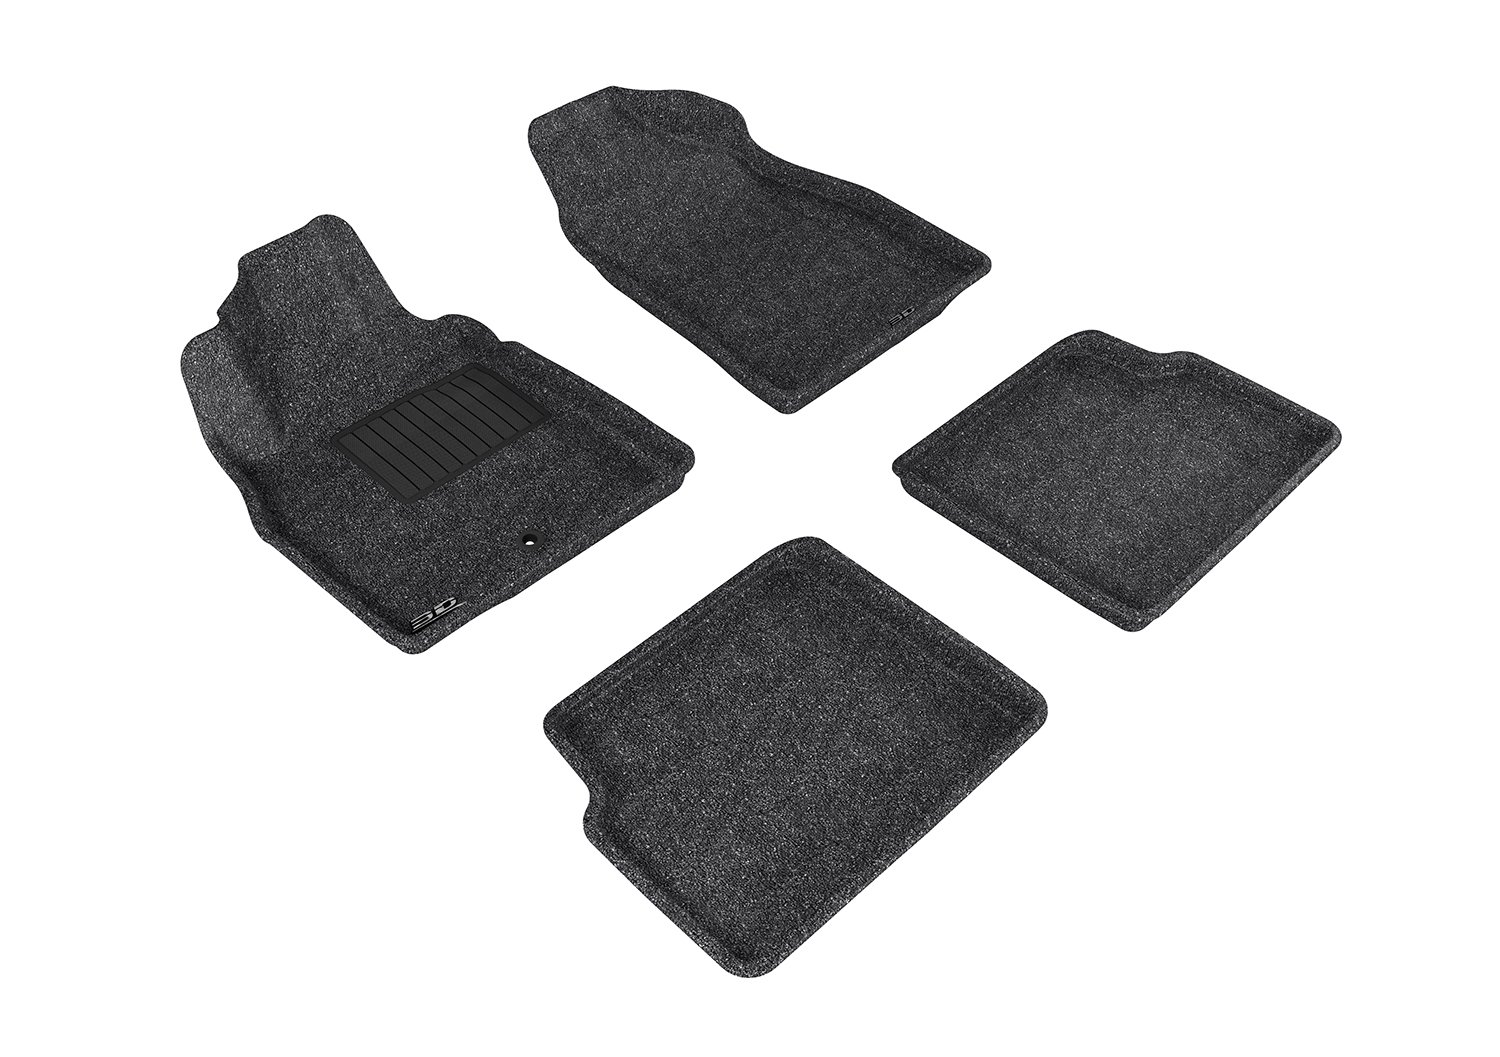 Tan L1CH02122202 3D MAXpider Second Row Custom Fit All-Weather Floor Mat for Select Chevrolet HHR Models Classic Carpet